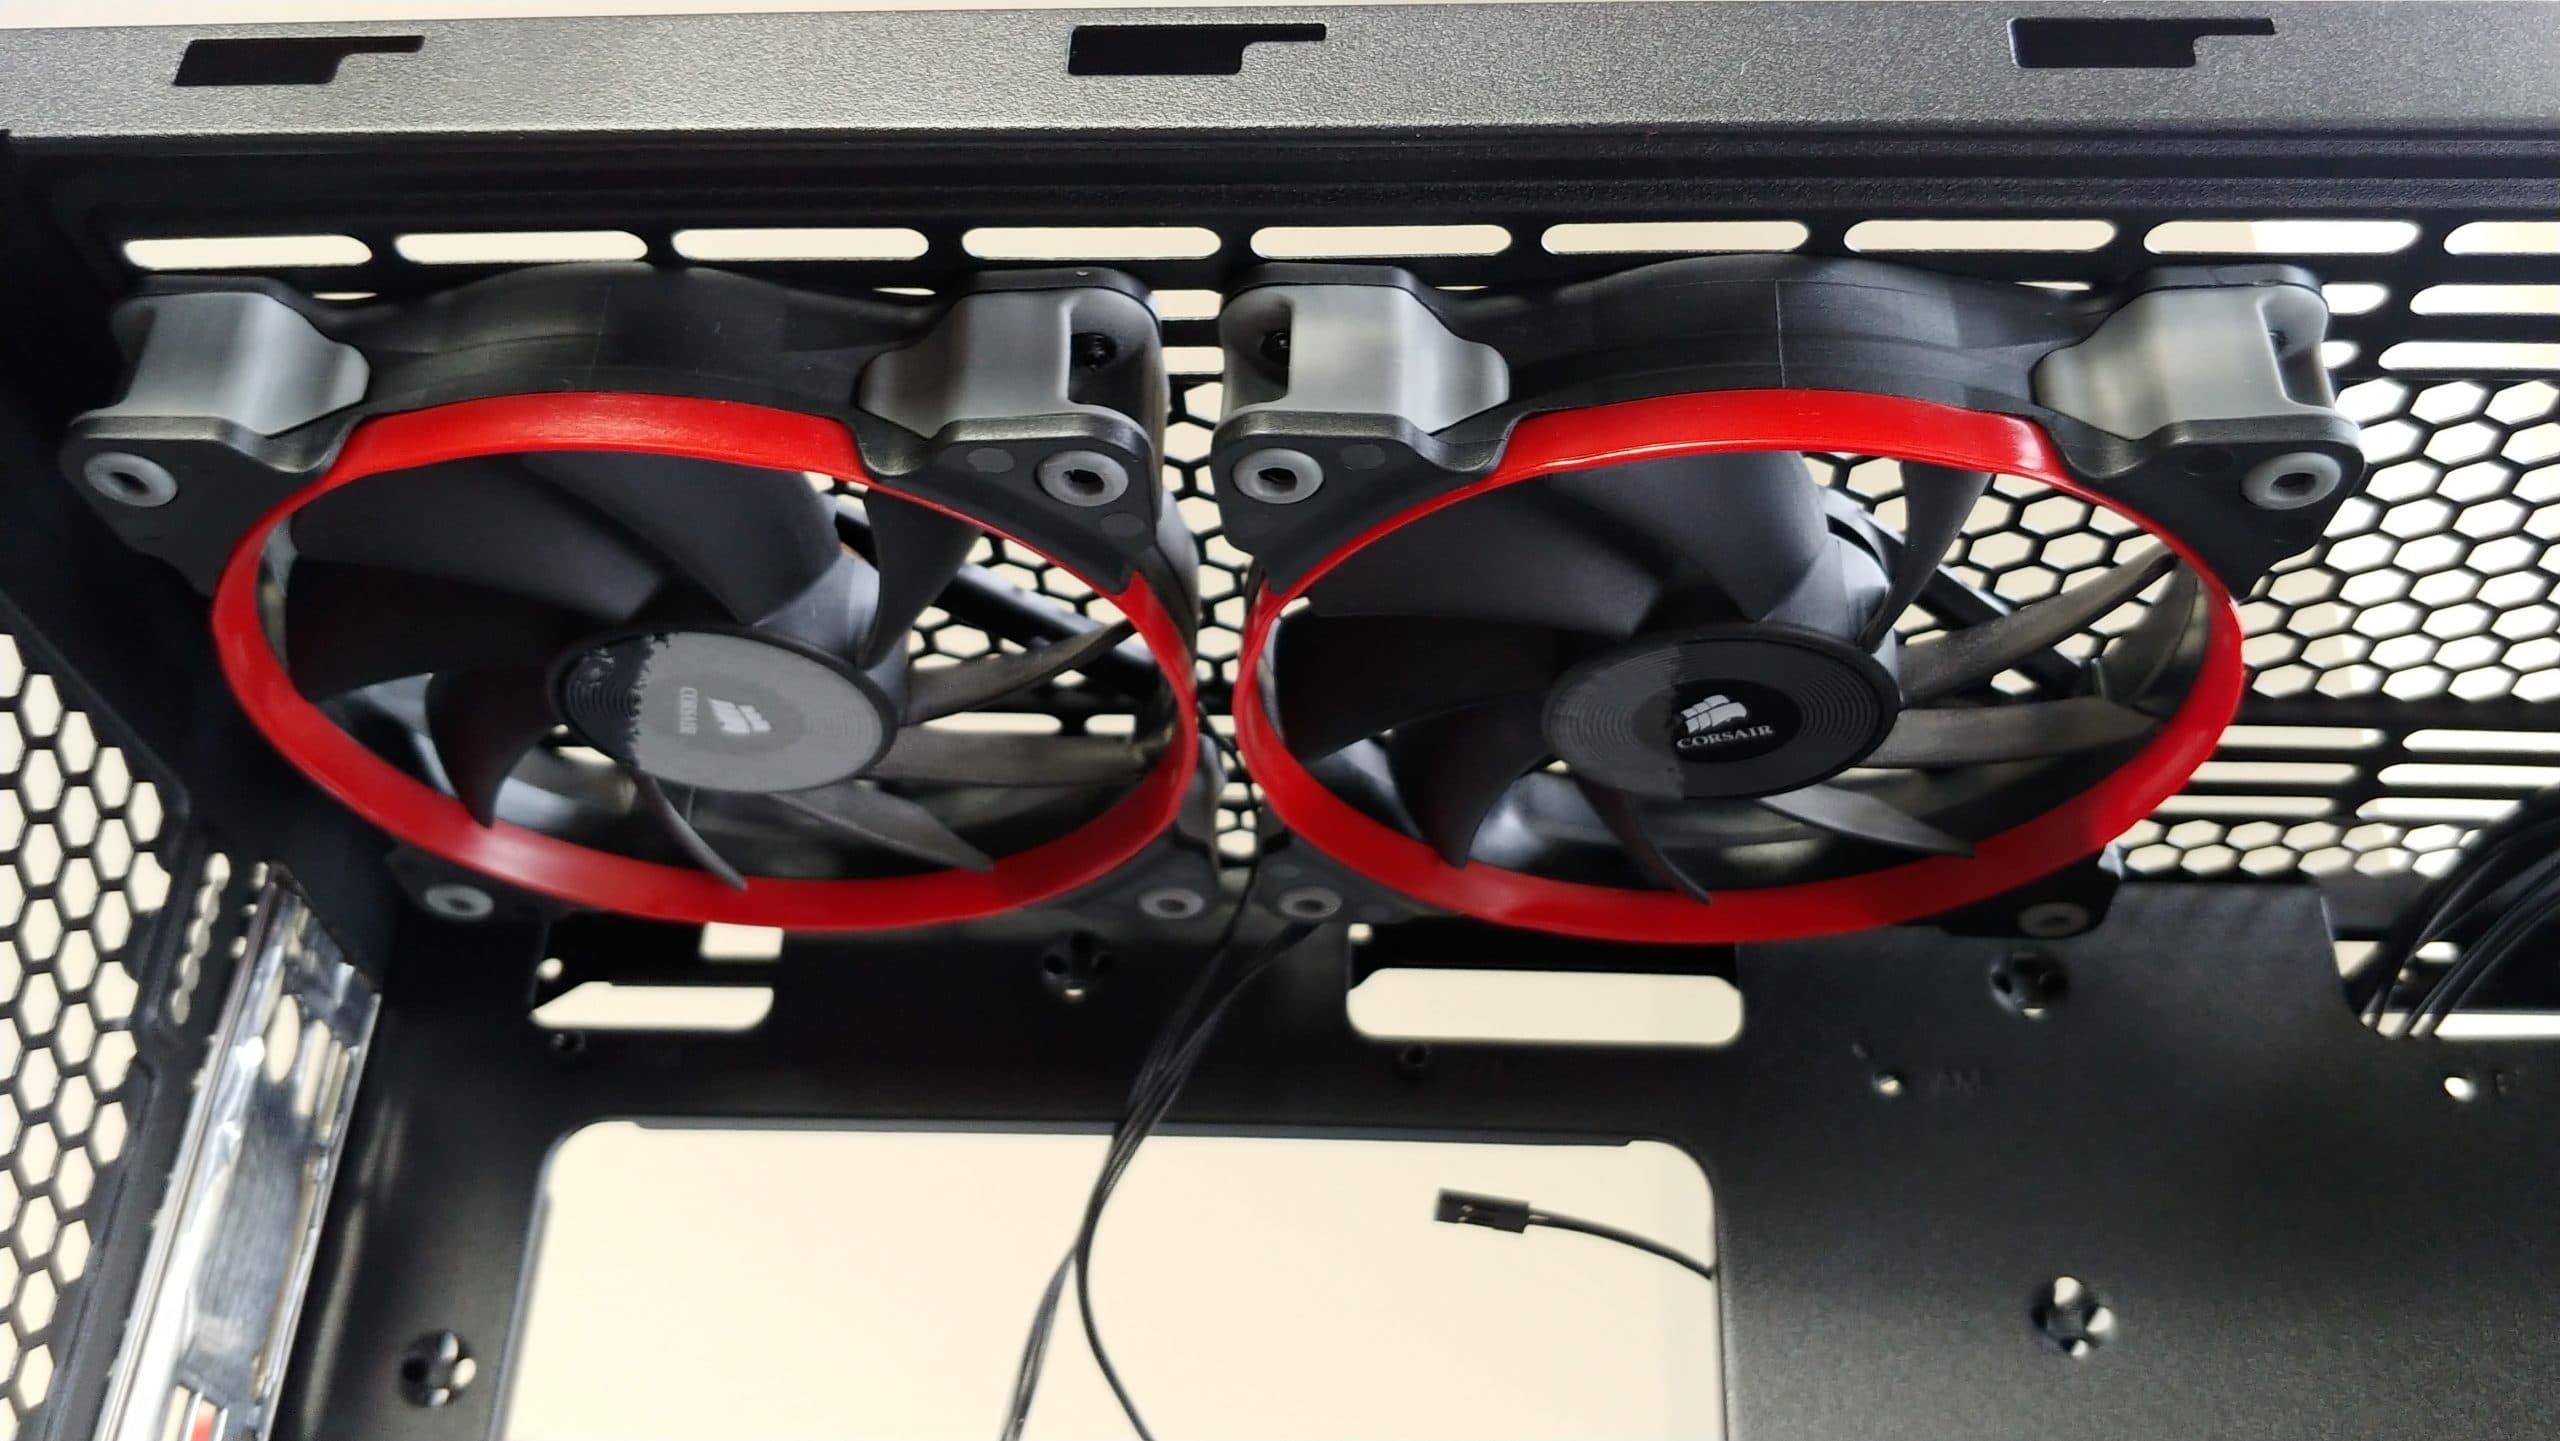 Inside the Gamdias Argus M1 case looking at the fans mounted to the top of the case.